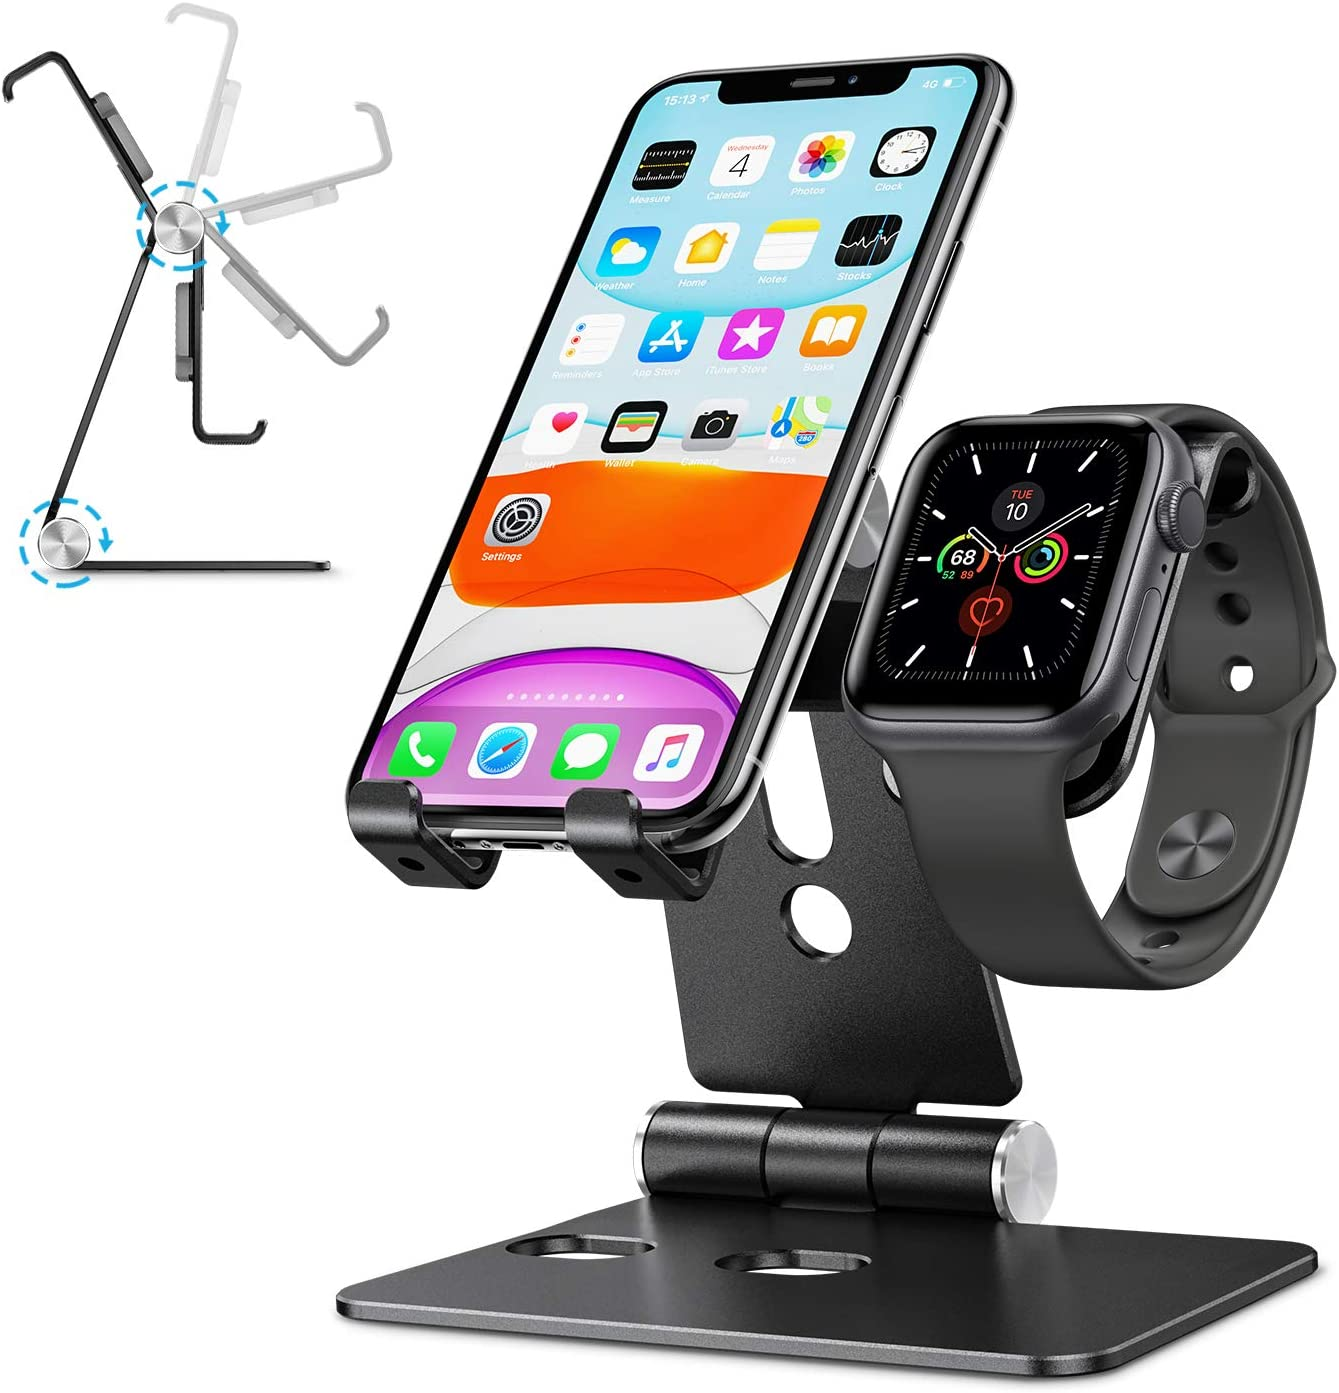 Apple Watch Charger Stand Accessories - OMOTON 2 in 1 Aluminum Foldable Desktop Charging Stand Holder Dock for nightstand Desk,Suit for Apple Watch SE/6/5/4/3/2/1, iPhone and Smart Phones, Black